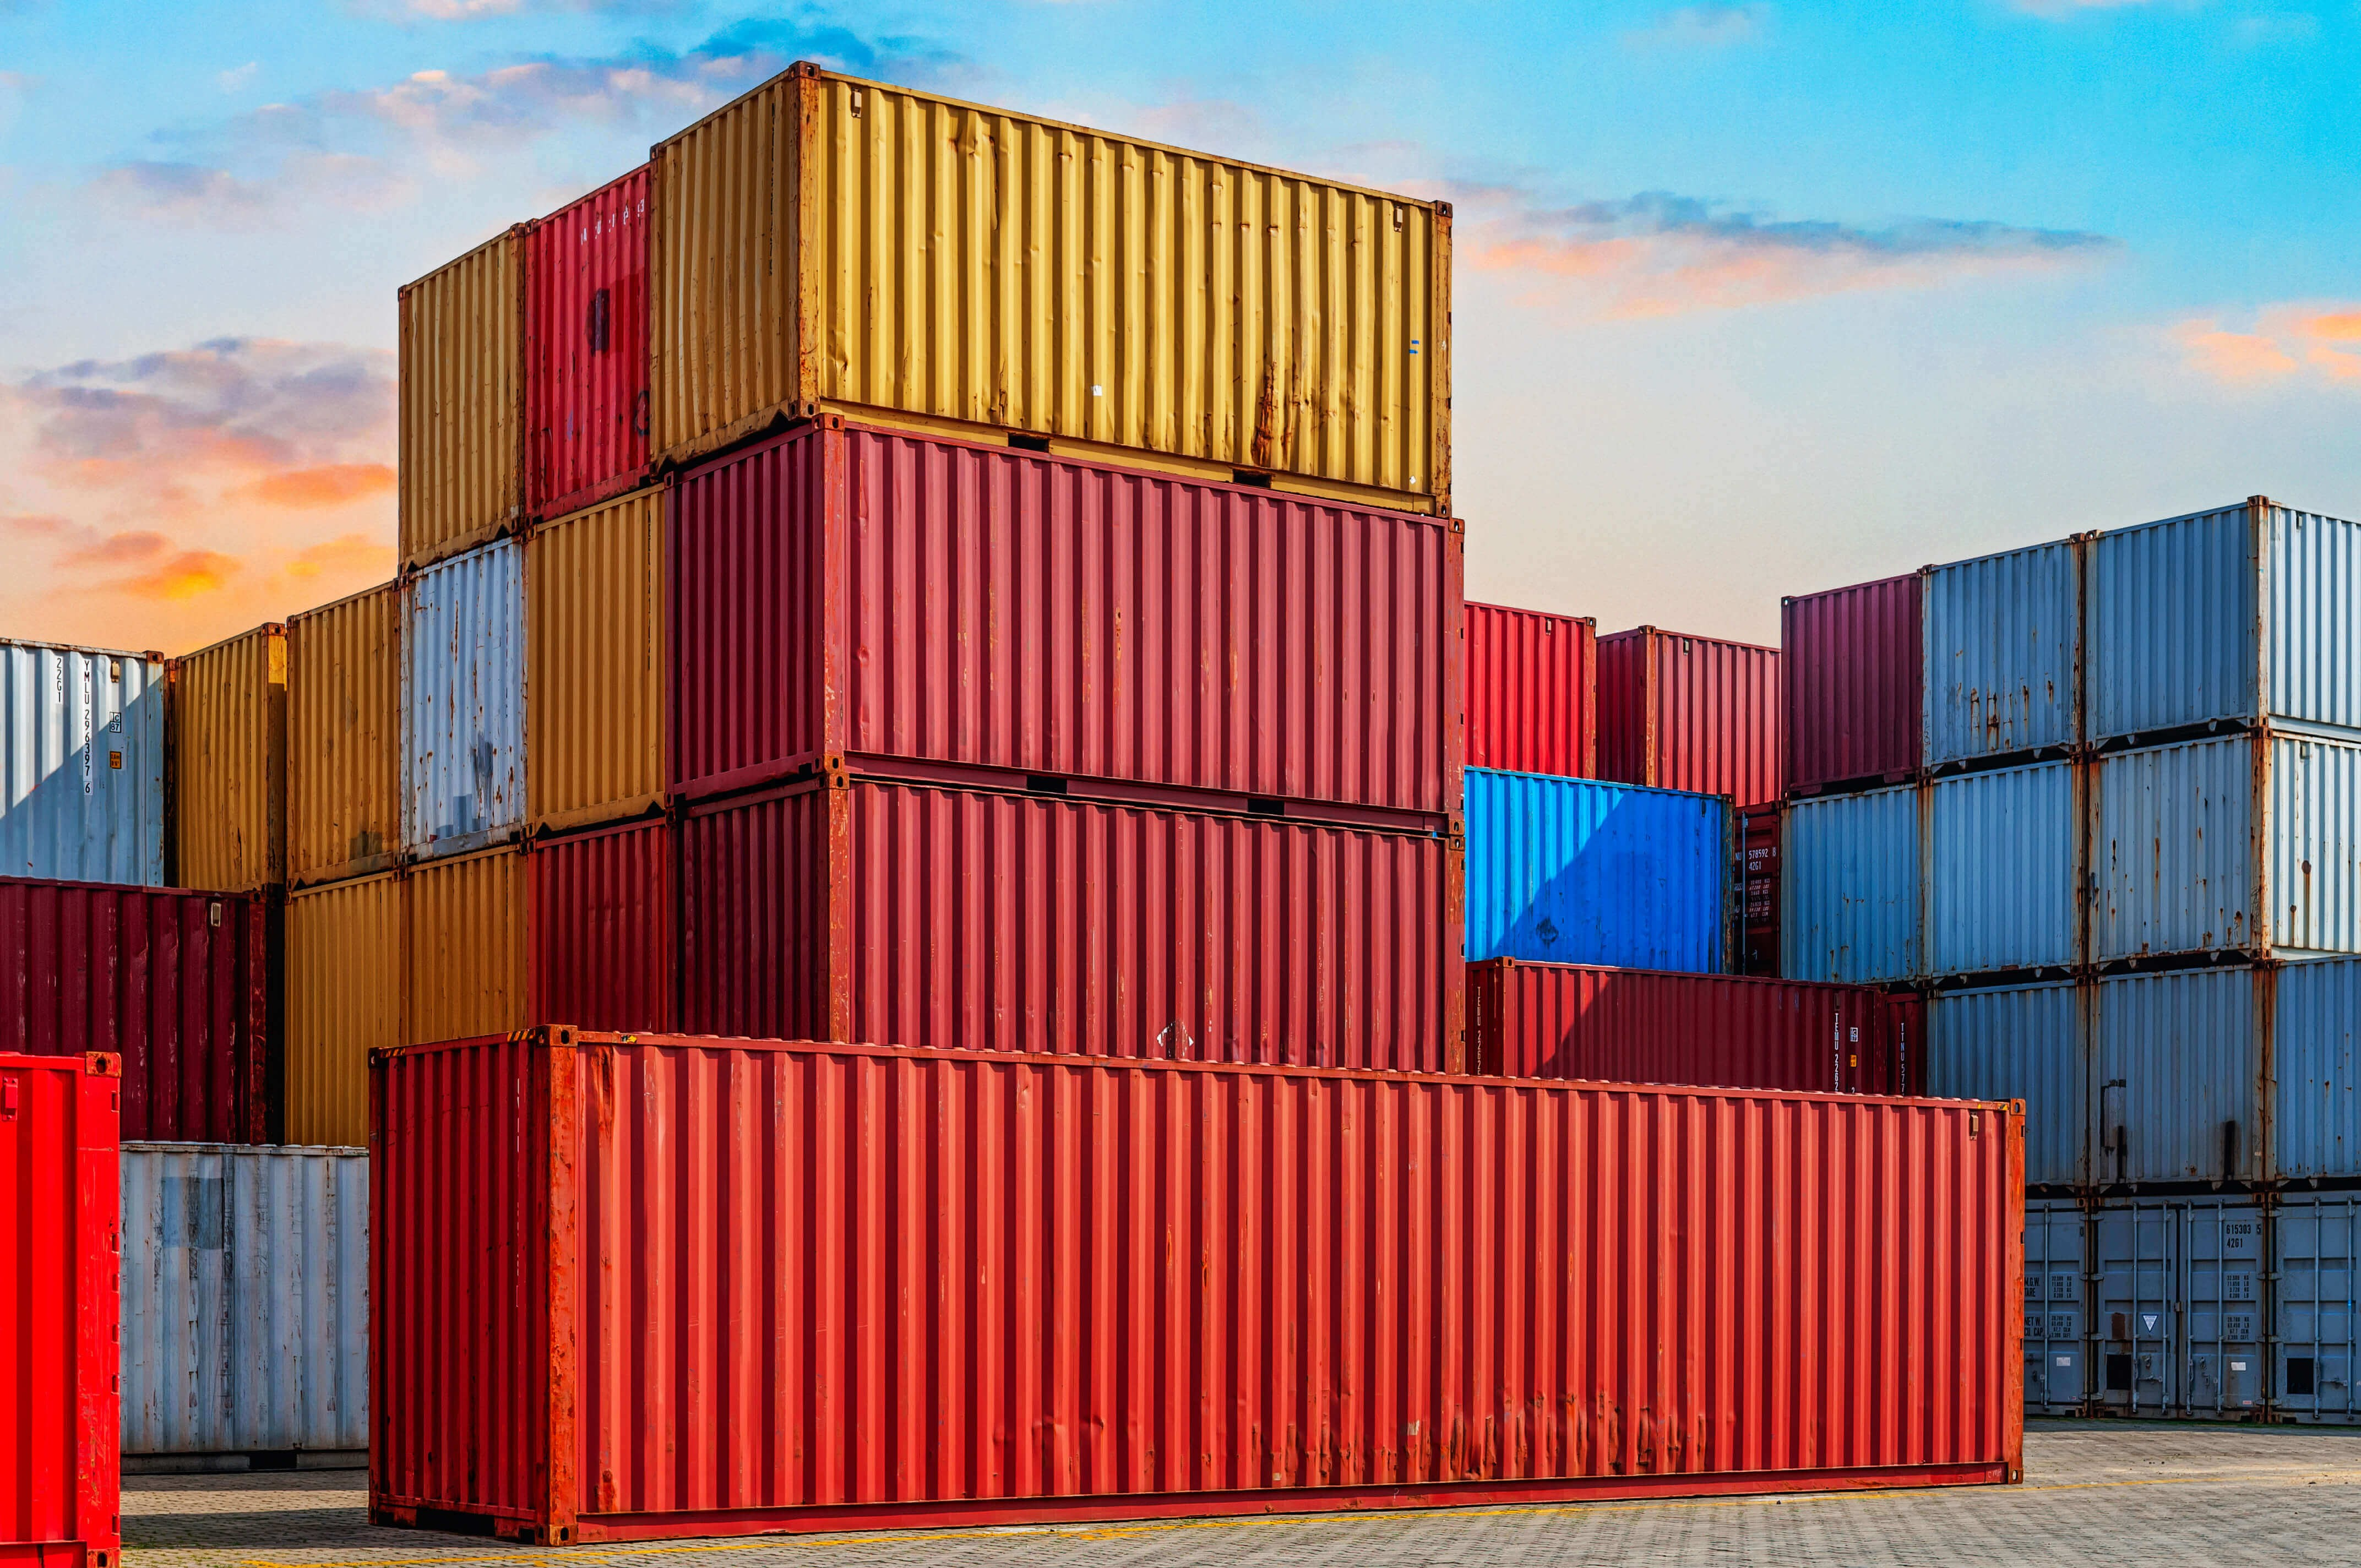 Container lines